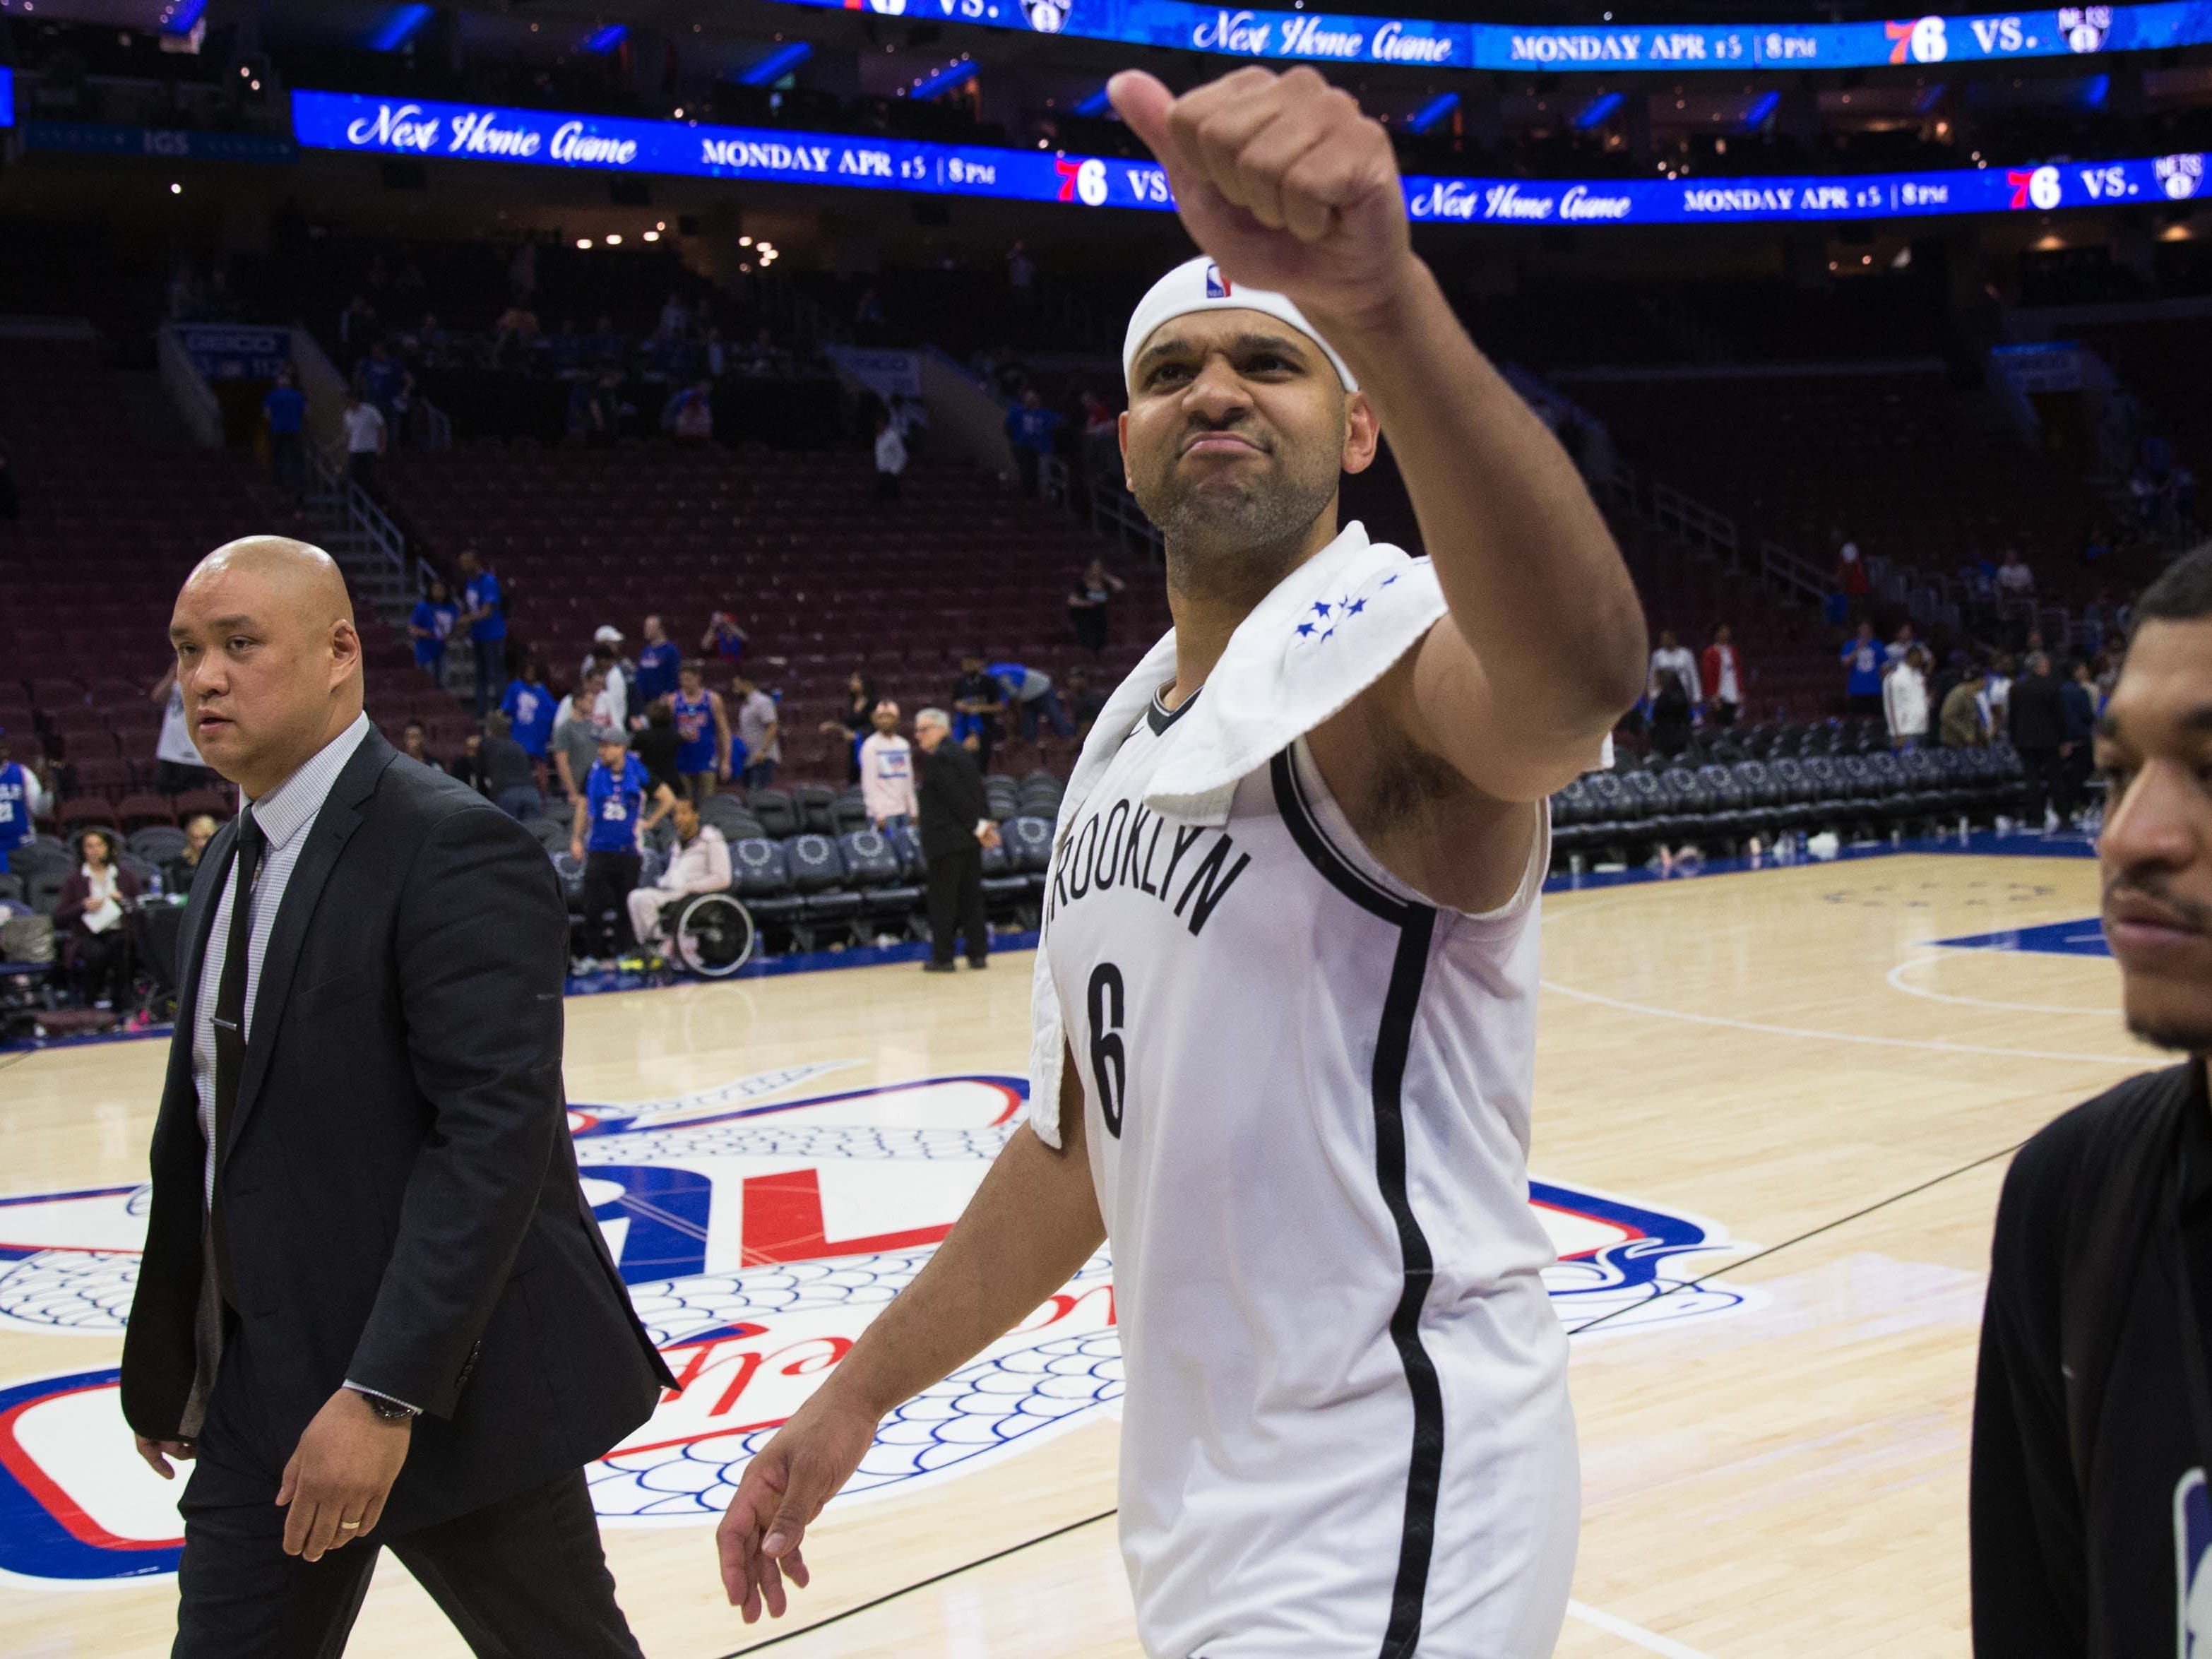 April 13: Nets forward Jared Dudley reacts as he walks off the court after a victory against the 76ers in Game 1.